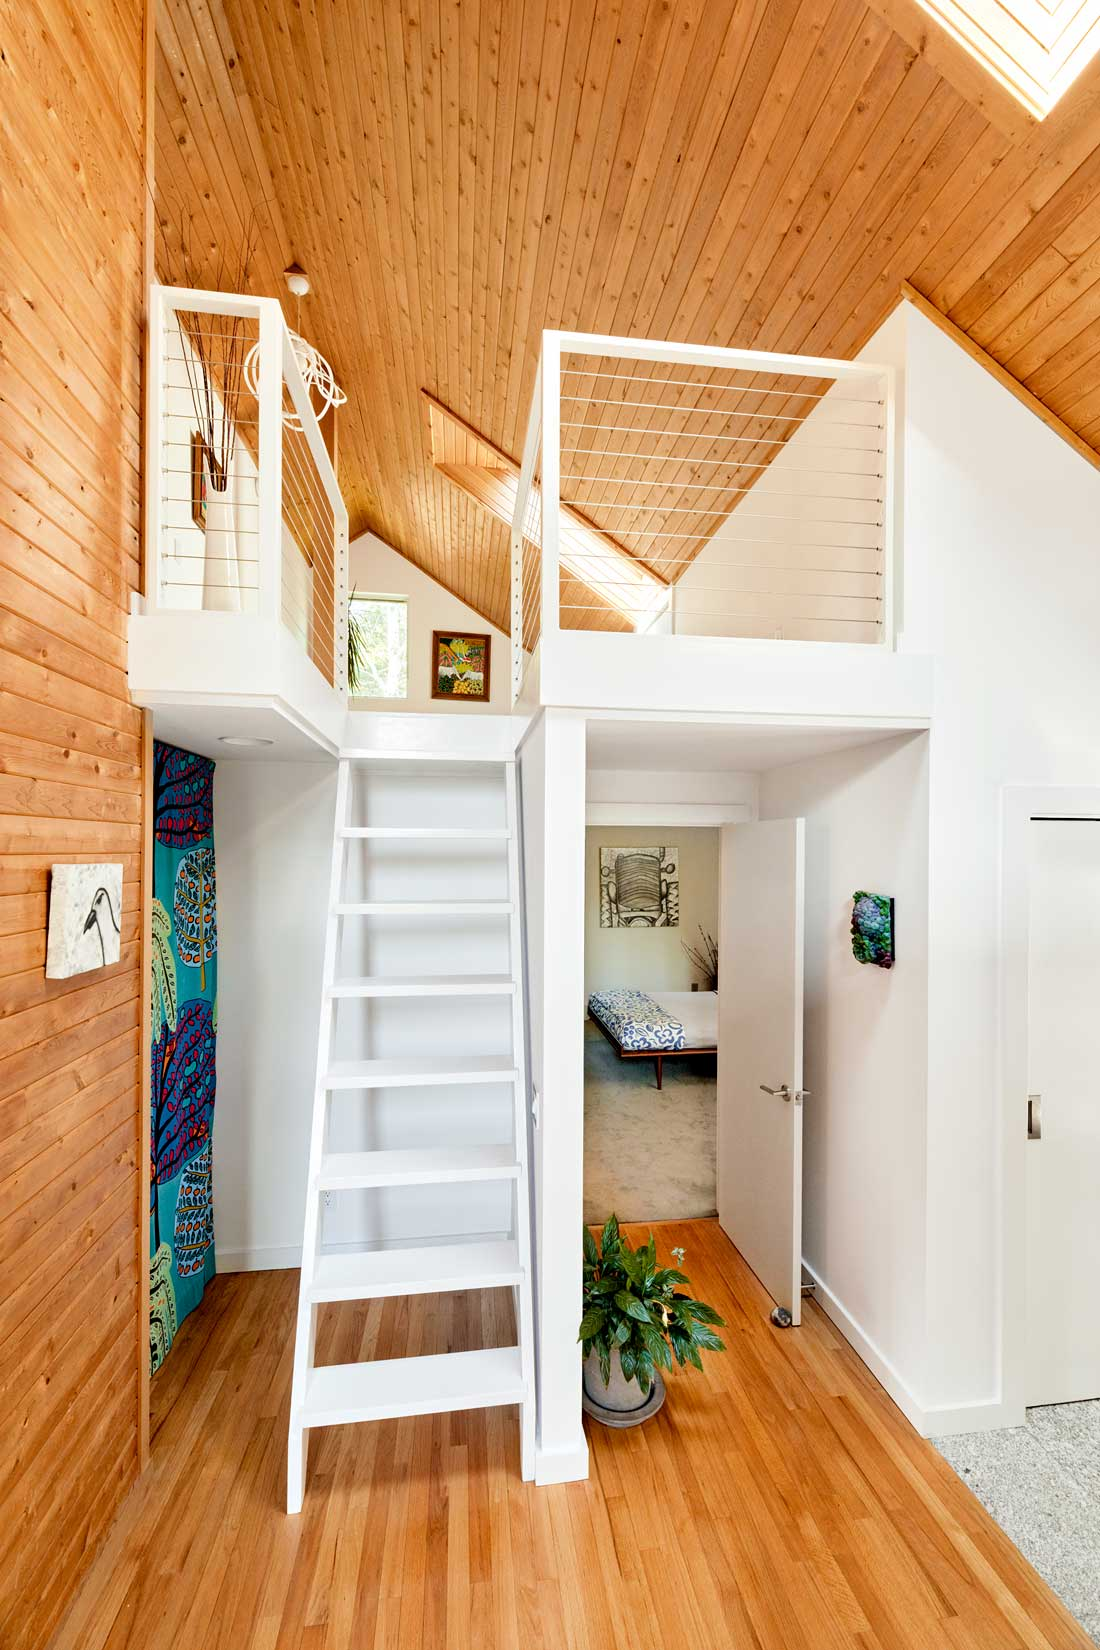 White paint and new cable railing transformed the entrance to the loft guest bedroom/office above the owners' suite.